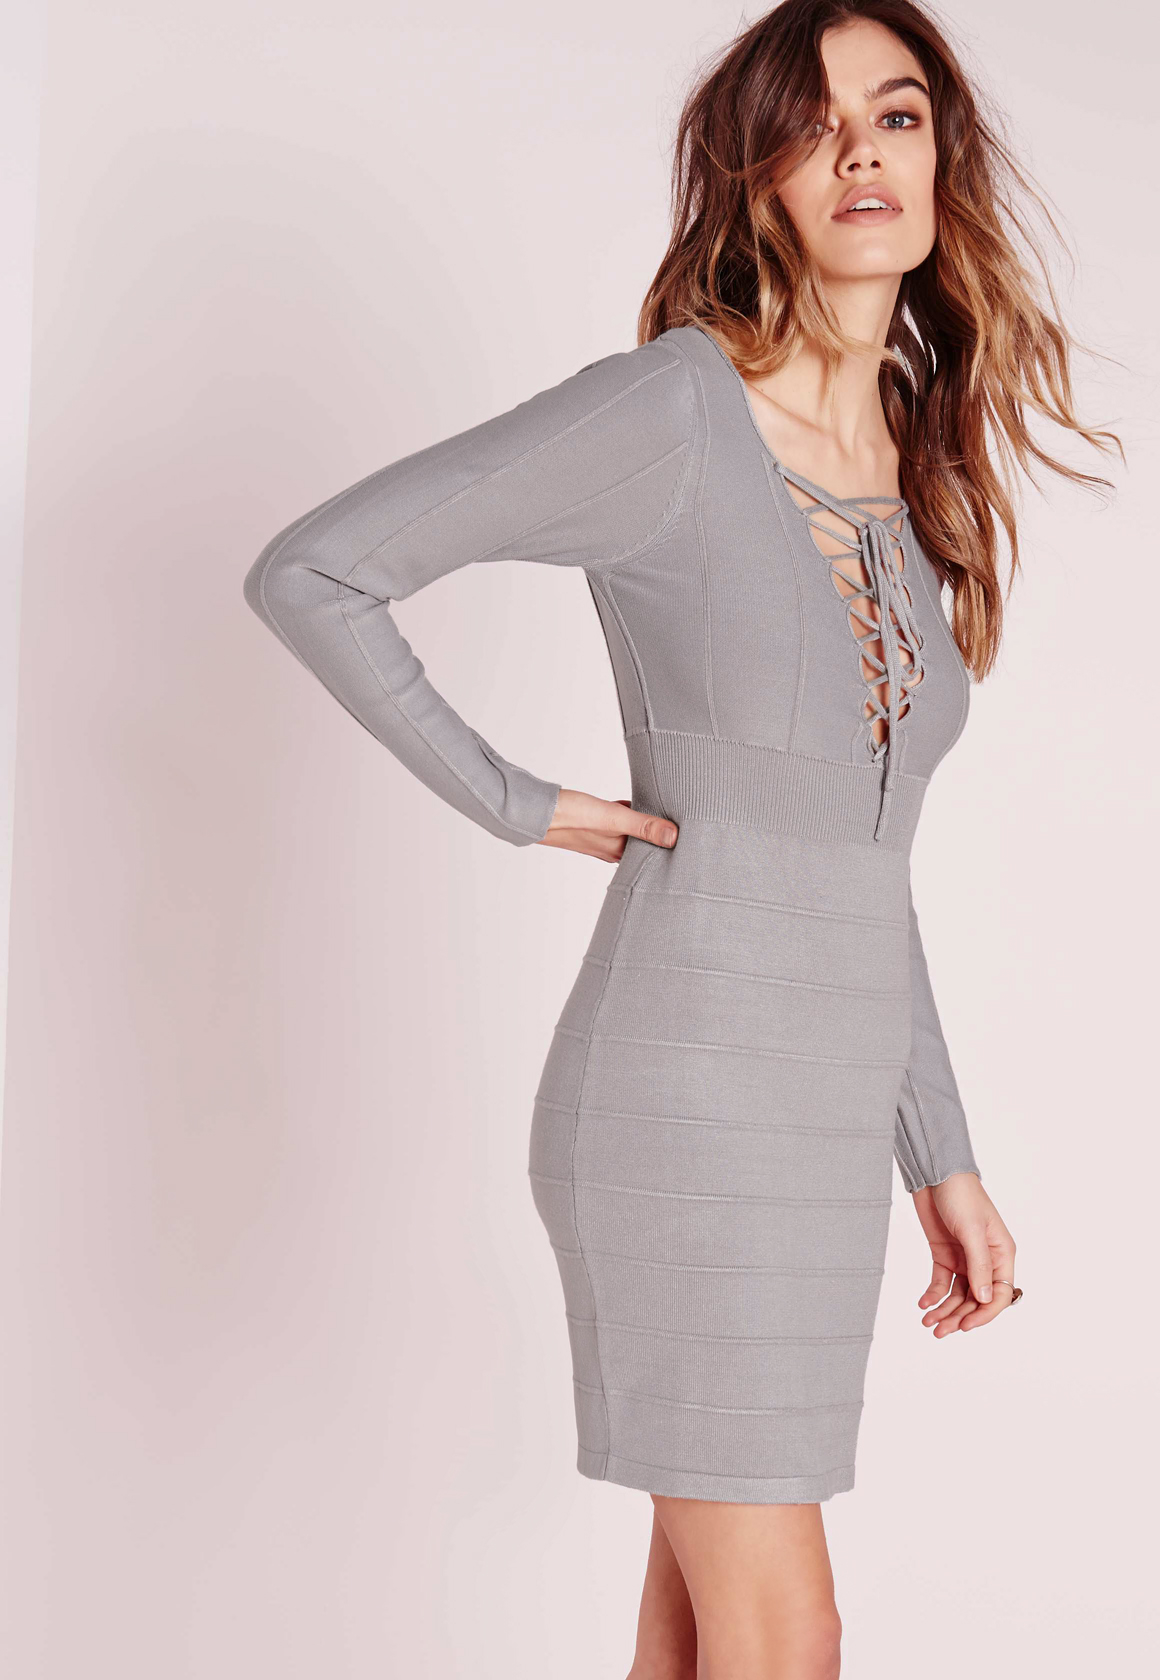 Lace Up Bodycon Knitted Dress Grey